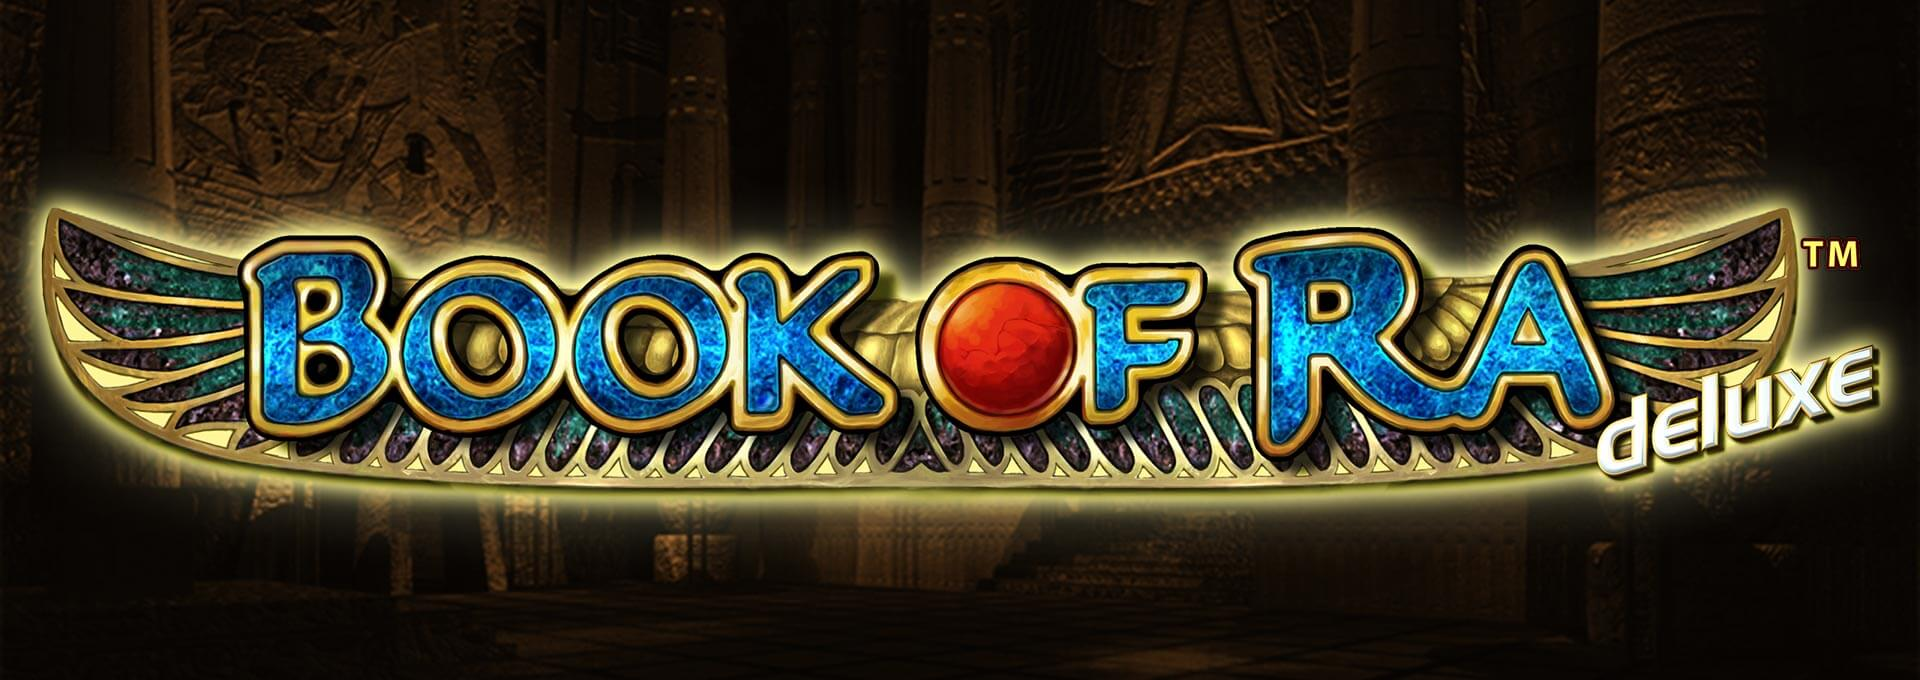 casino slots free play online book of ra deluxe download kostenlos